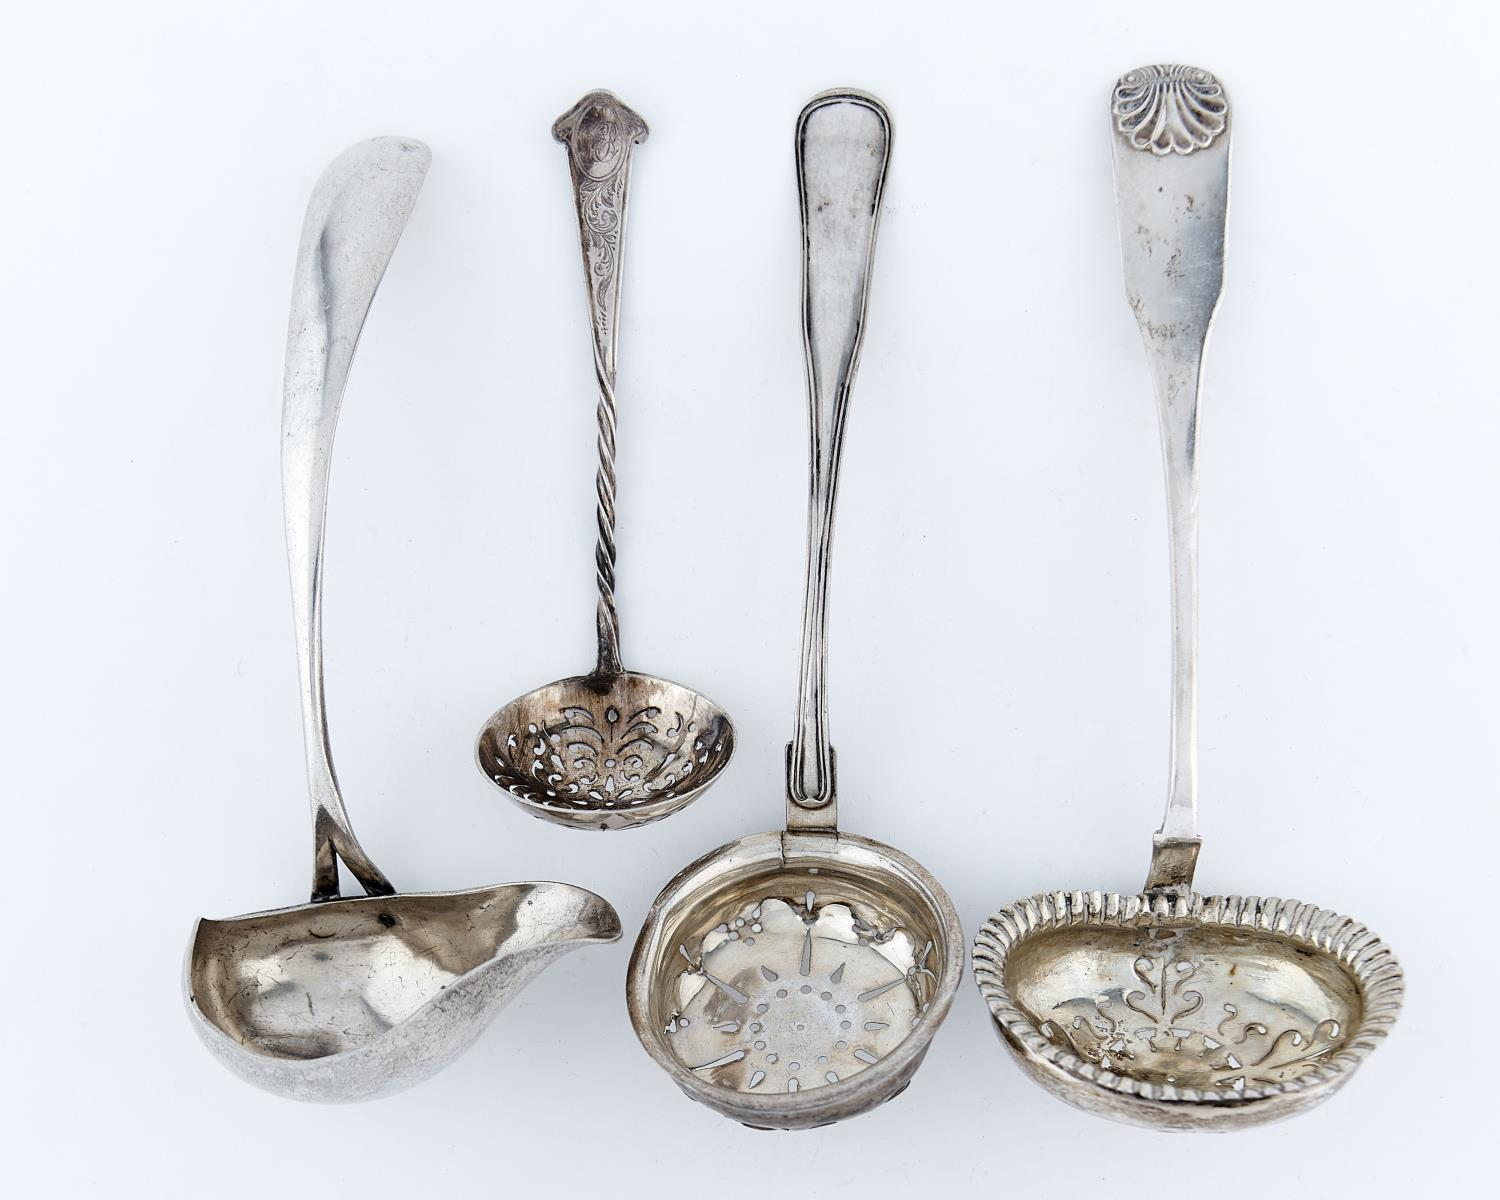 TWO DANISH SILVER SUGAR SIFTERS, 19TH AND 20TH C, ANOTHER CONTINENTAL SILVER SUGAR SIFTER AND A